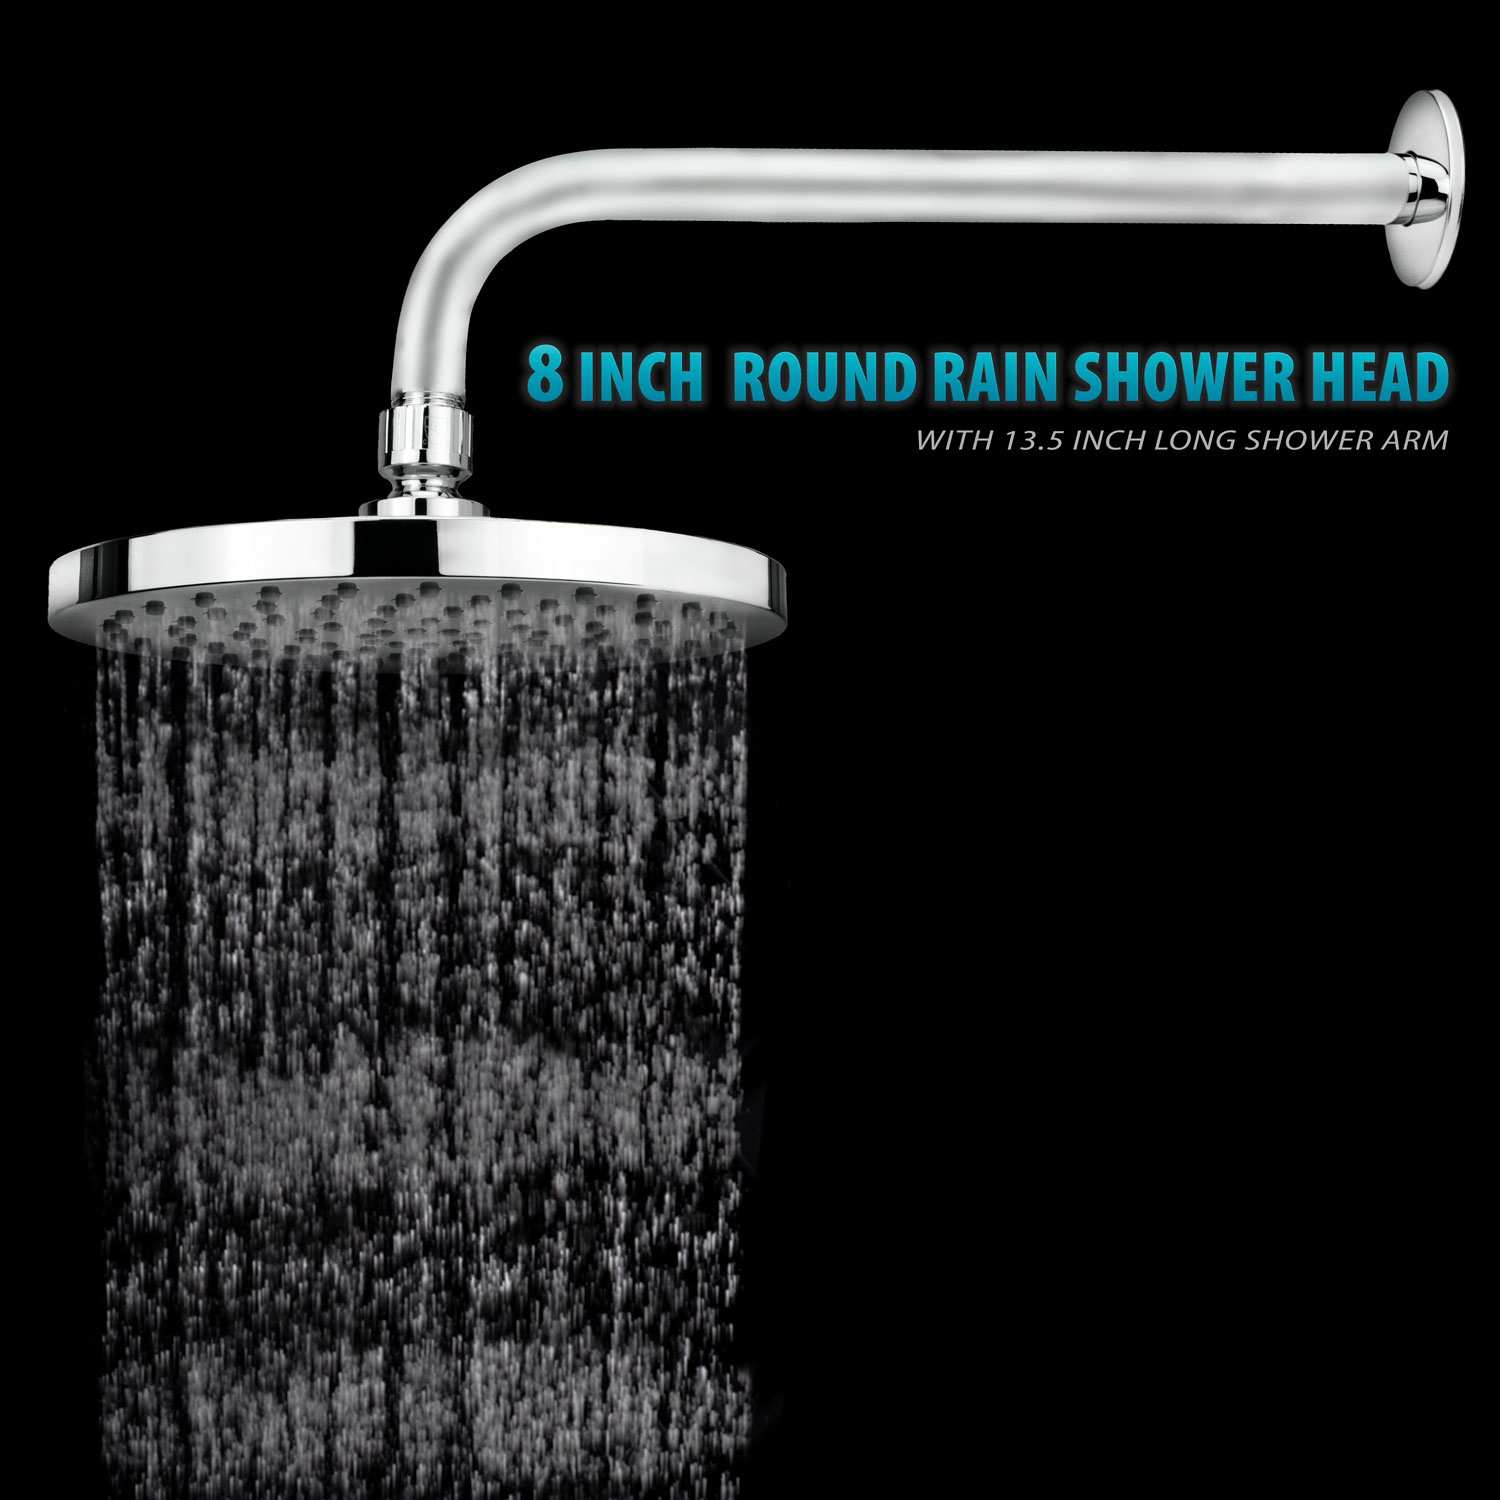 Spa 8 inch Rainfall Round 90 Jet Rain Shower Head with 13.5 inch Extension Arm